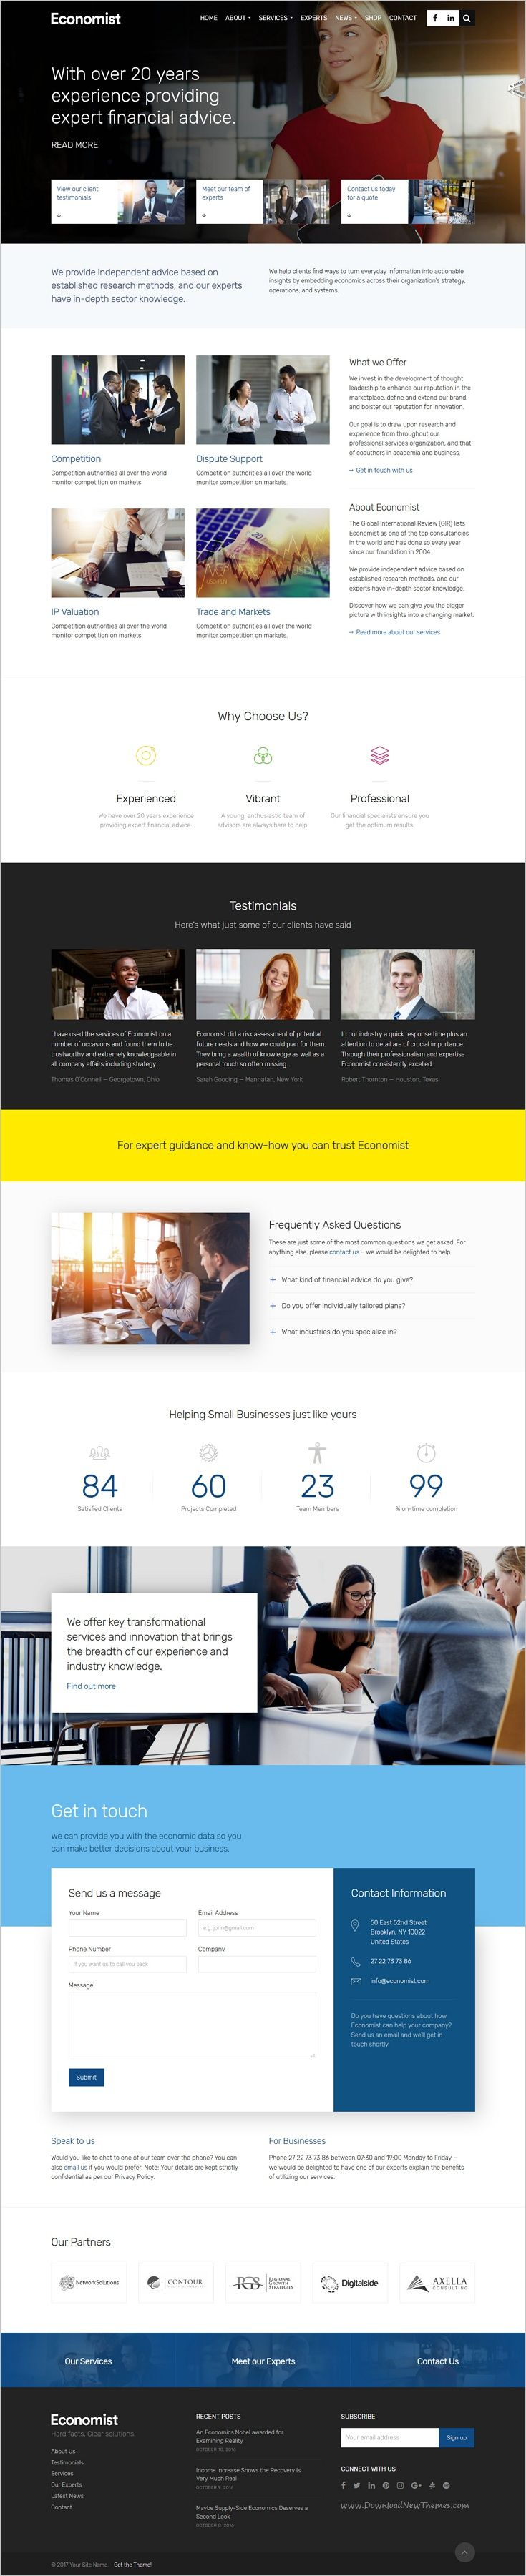 Economist is beautifully design responsive #WordPress theme for #business and #finance website download now➩ https://themeforest.net/item/economist-business-and-finance-wordpress-theme/18818473?ref=Datasata